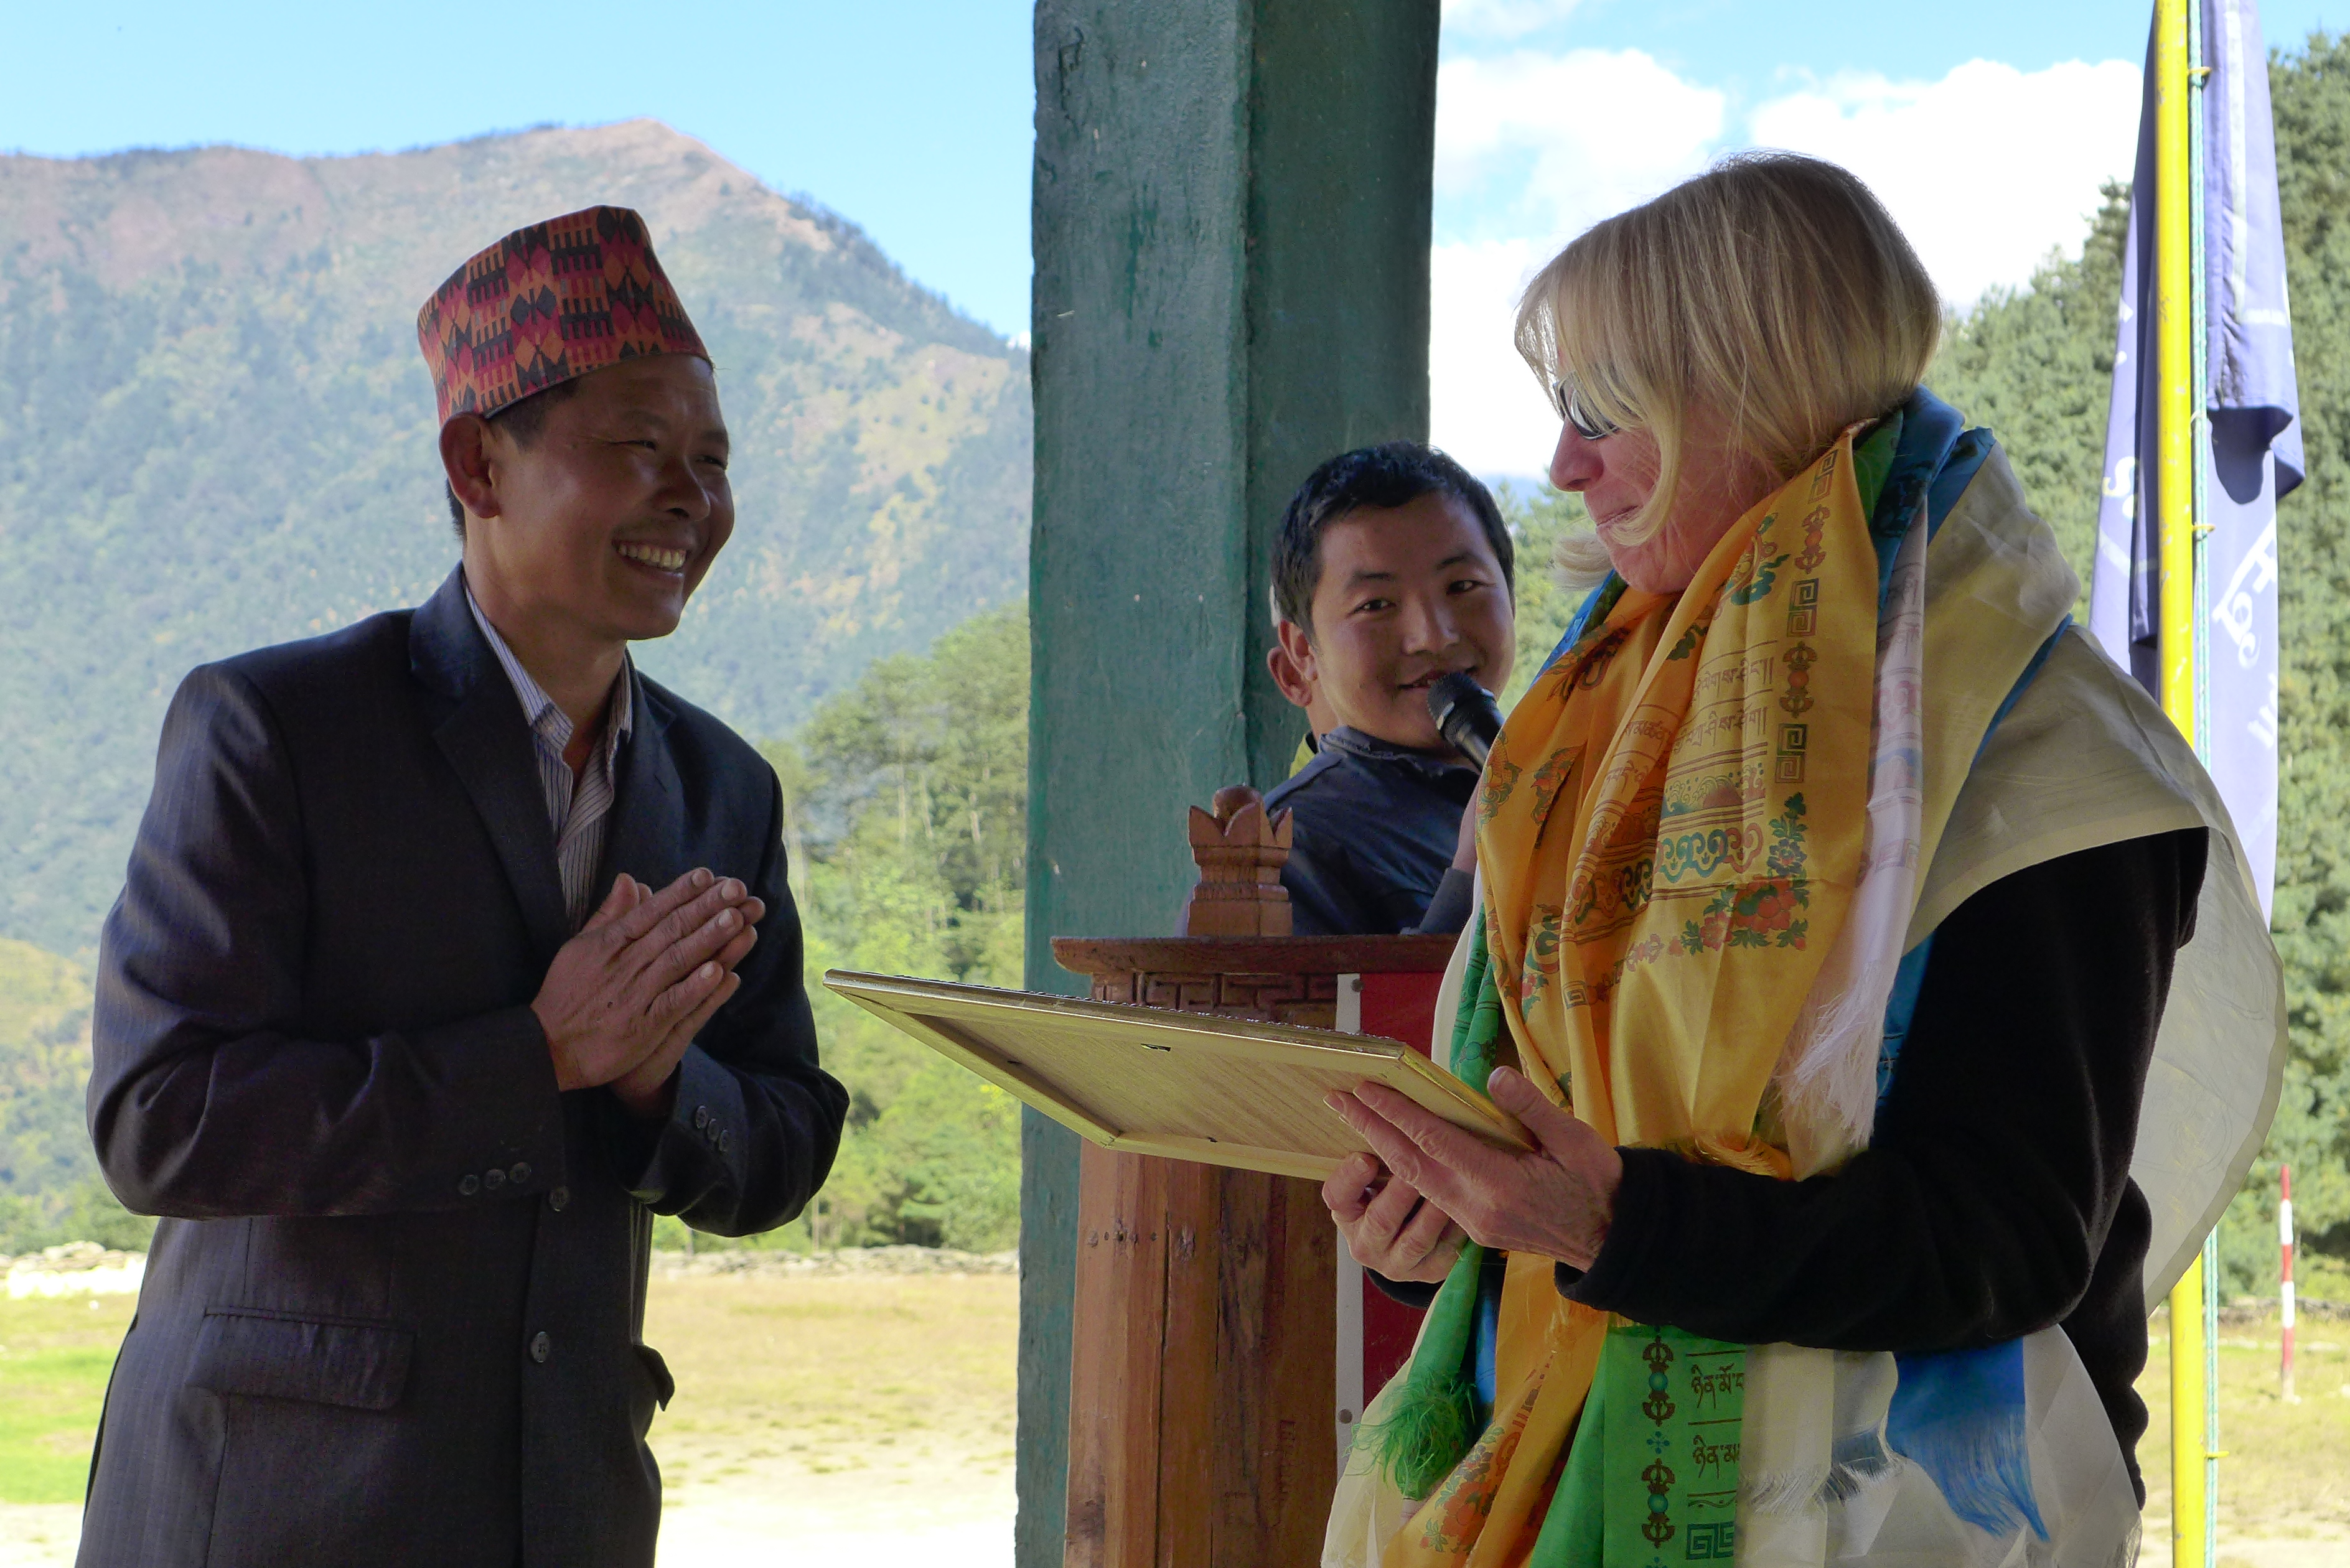 Denise Coriell of the Tara Foundation USA accepting a certificate from the people of Nunthala in appreciation of the Hew Khola Micro Hydro Power Plant Project funded by Tara Foundation USA.